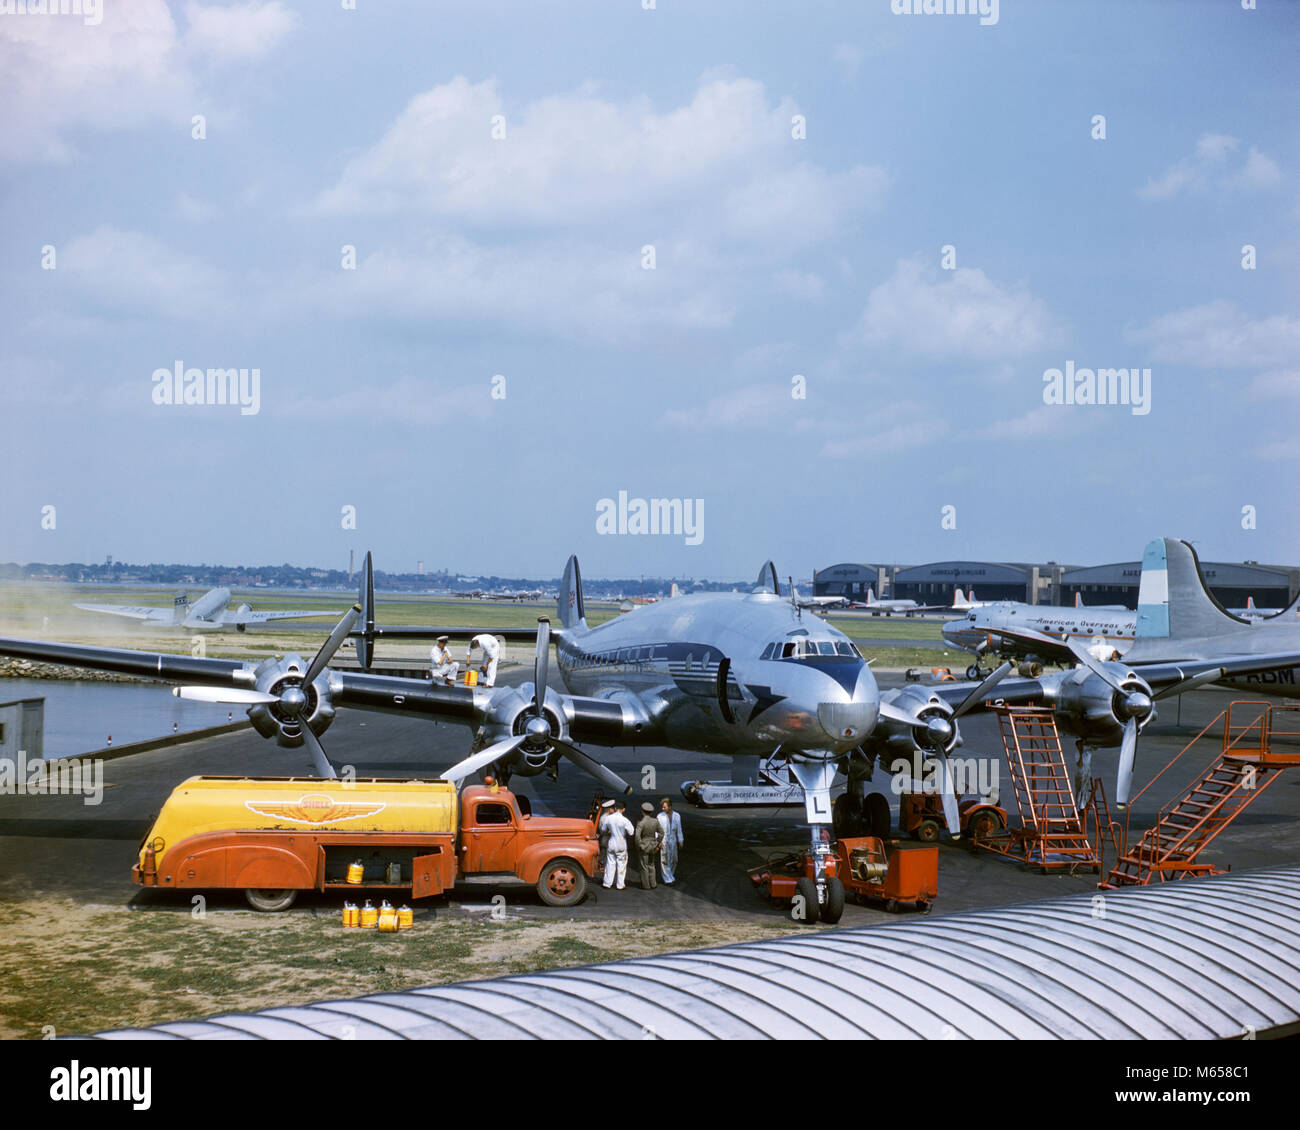 1950s CONSTELLATION PROPELLER COMMERCIAL PASSENGER AIRPLANE BEING SERVICED FOR FLIGHT TO ENGLAND LAGUARDIA AIRPORT - Stock Image